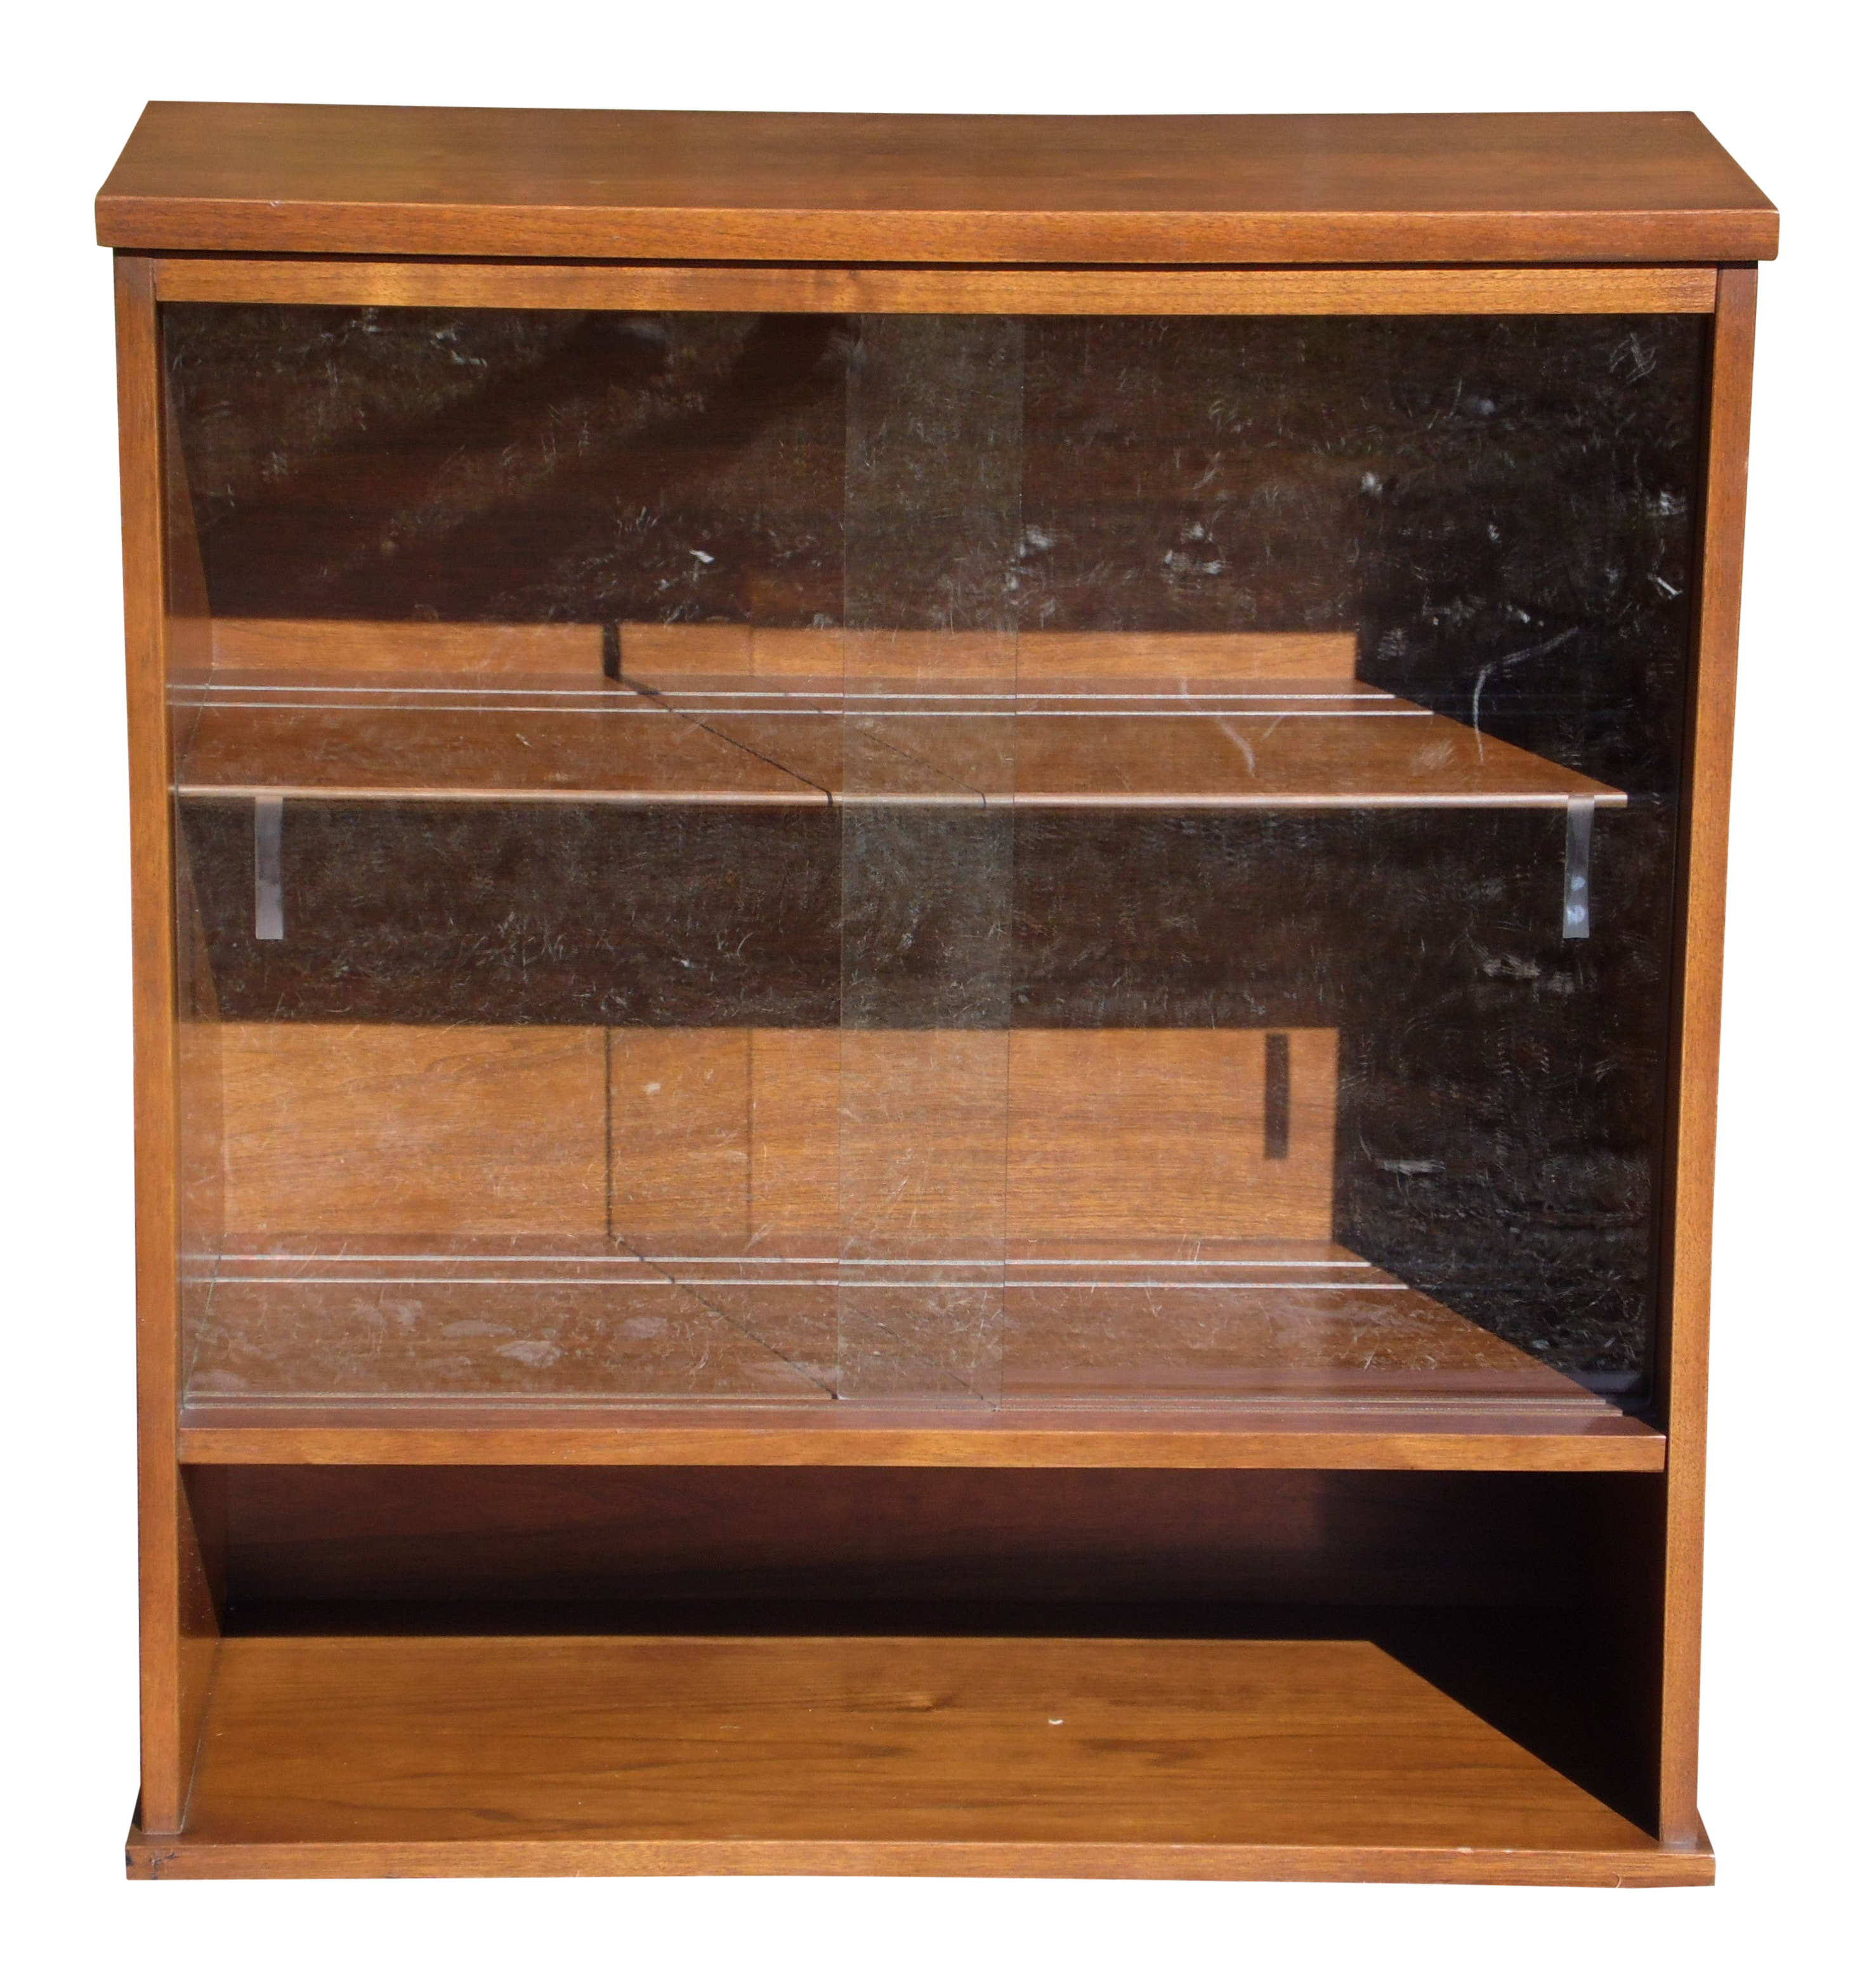 Vintage Mid Century Modern Walnut Jr Hutch Small Glass Display Cabinet Bookcase